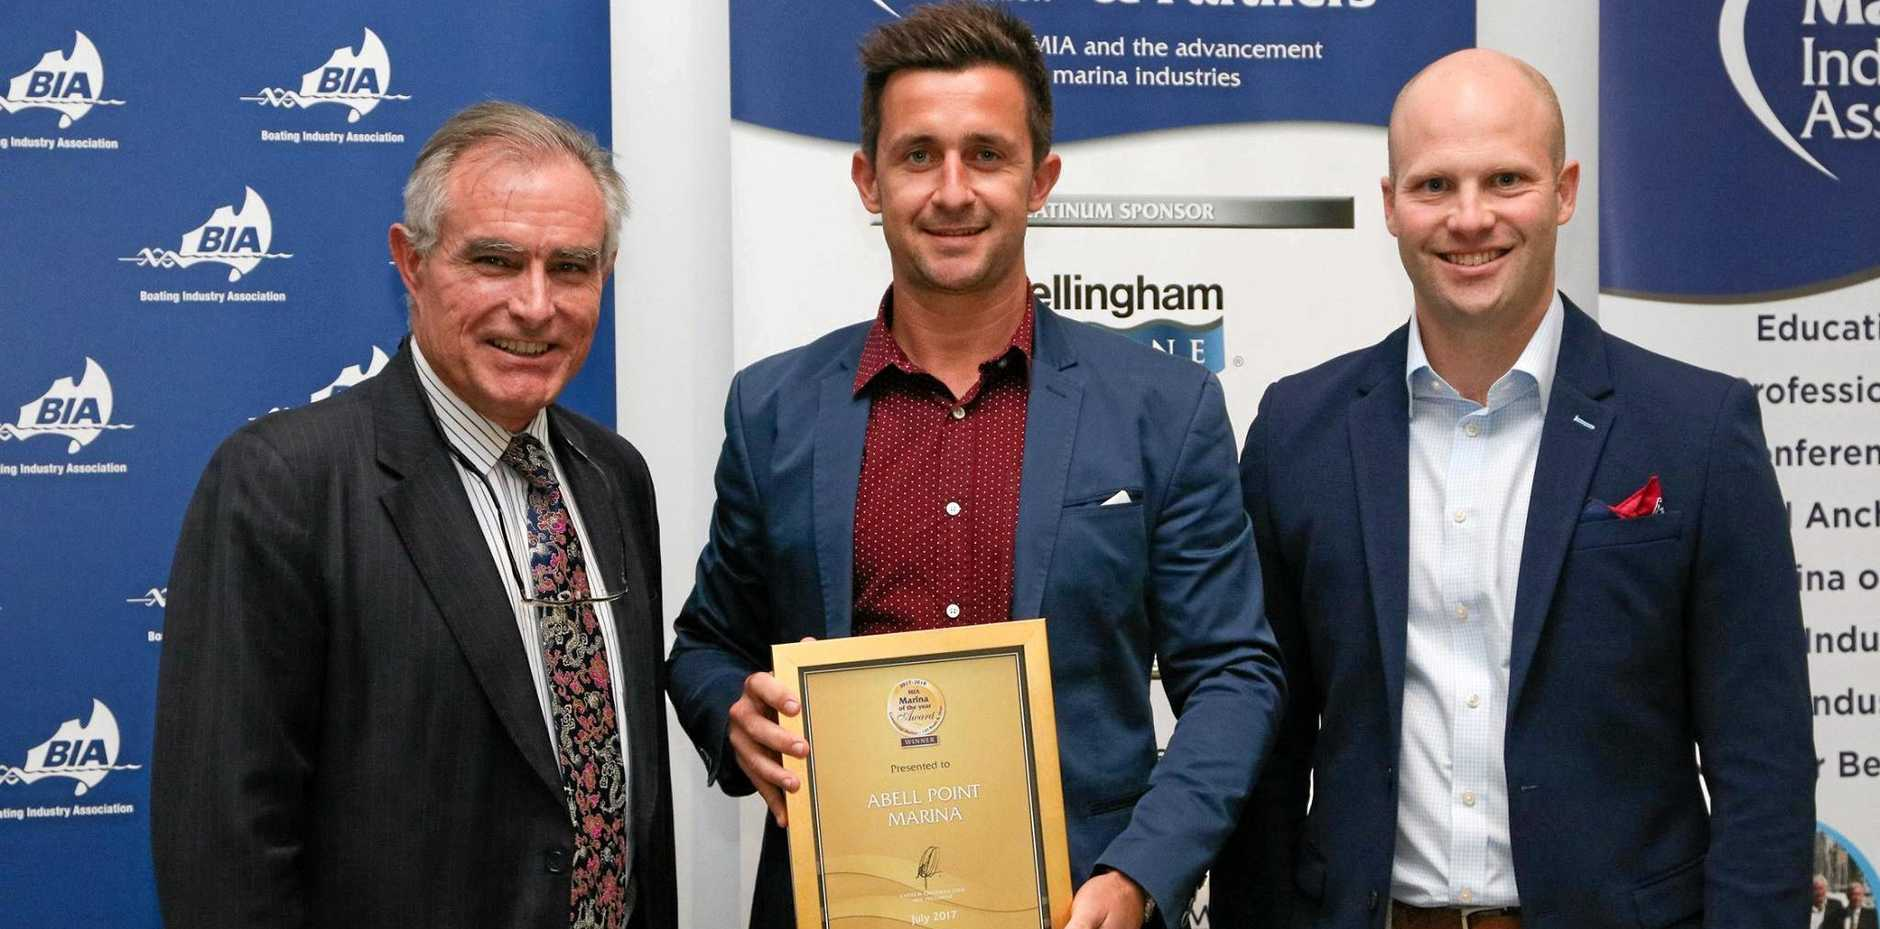 TOP NOTCH: Abell Point Marina GM Luke McCaul accepting the award for Marina of the Year